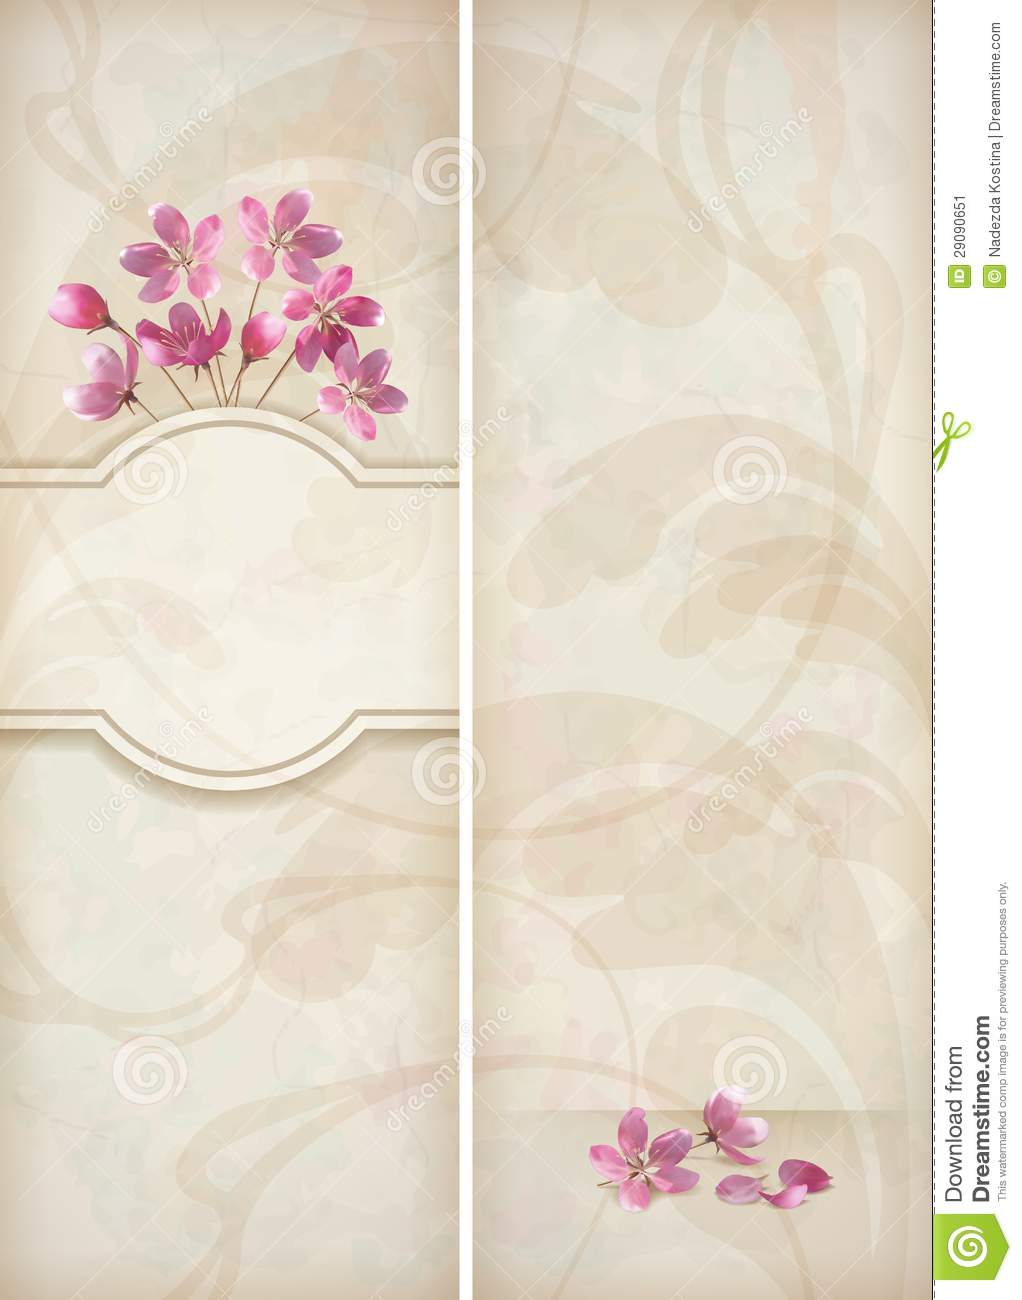 Floral Decorative Wedding Menu Template Design Stock Image Image 29090651